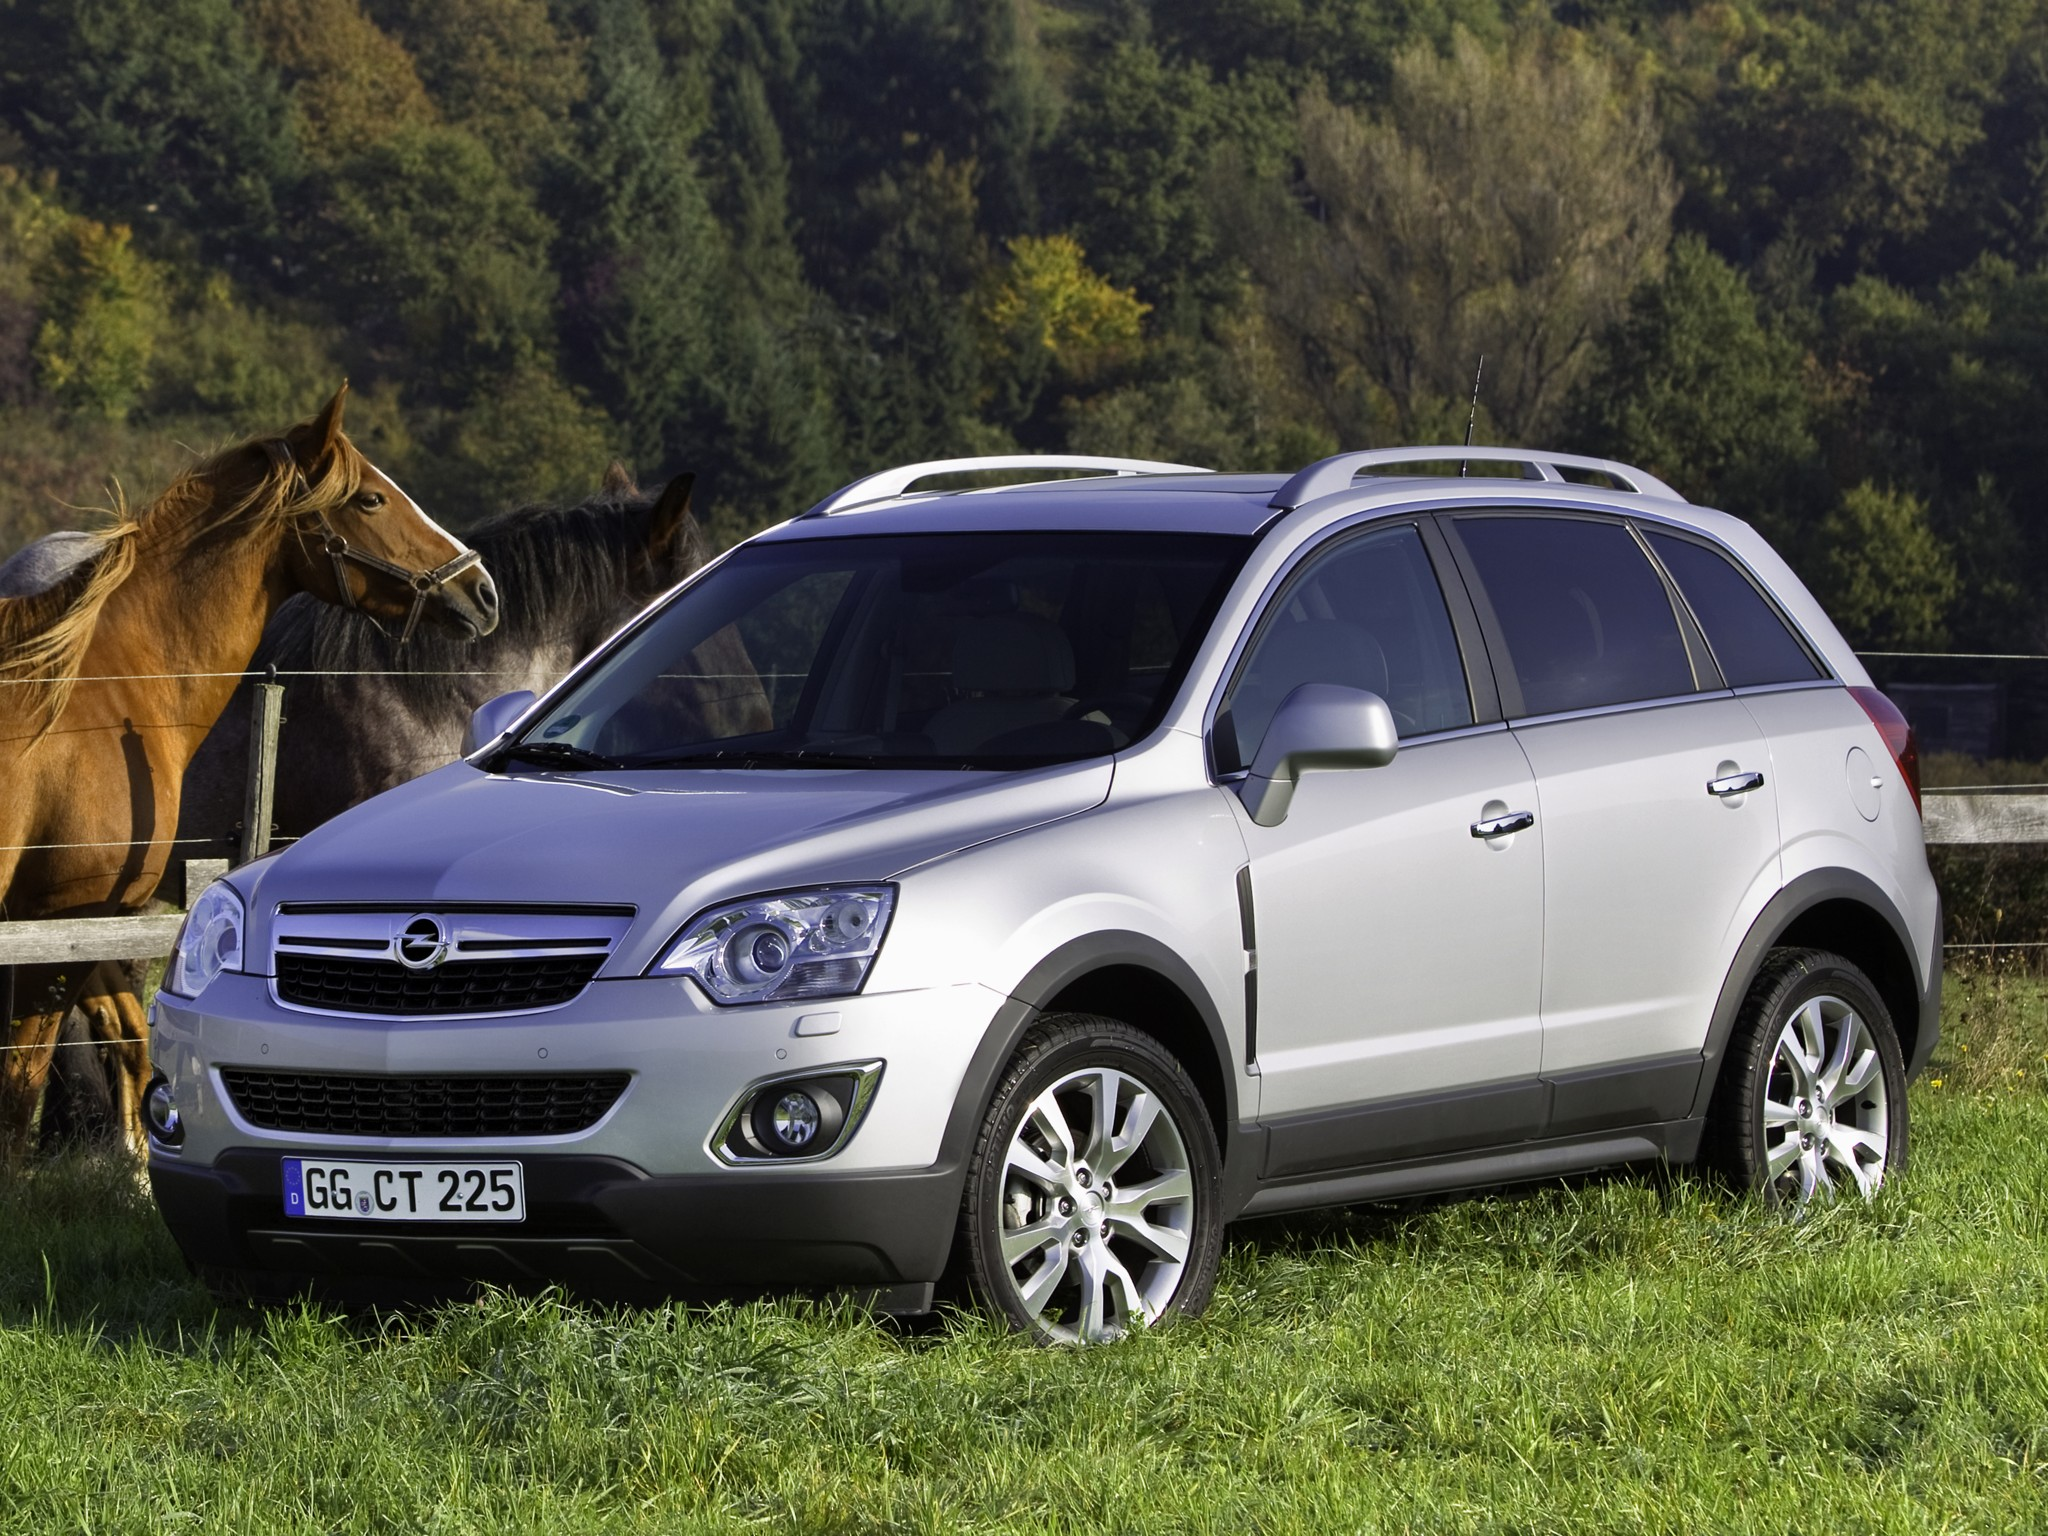 opel antara specs 2010 2011 2012 2013 2014 2015 2016 2017 autoevolution. Black Bedroom Furniture Sets. Home Design Ideas